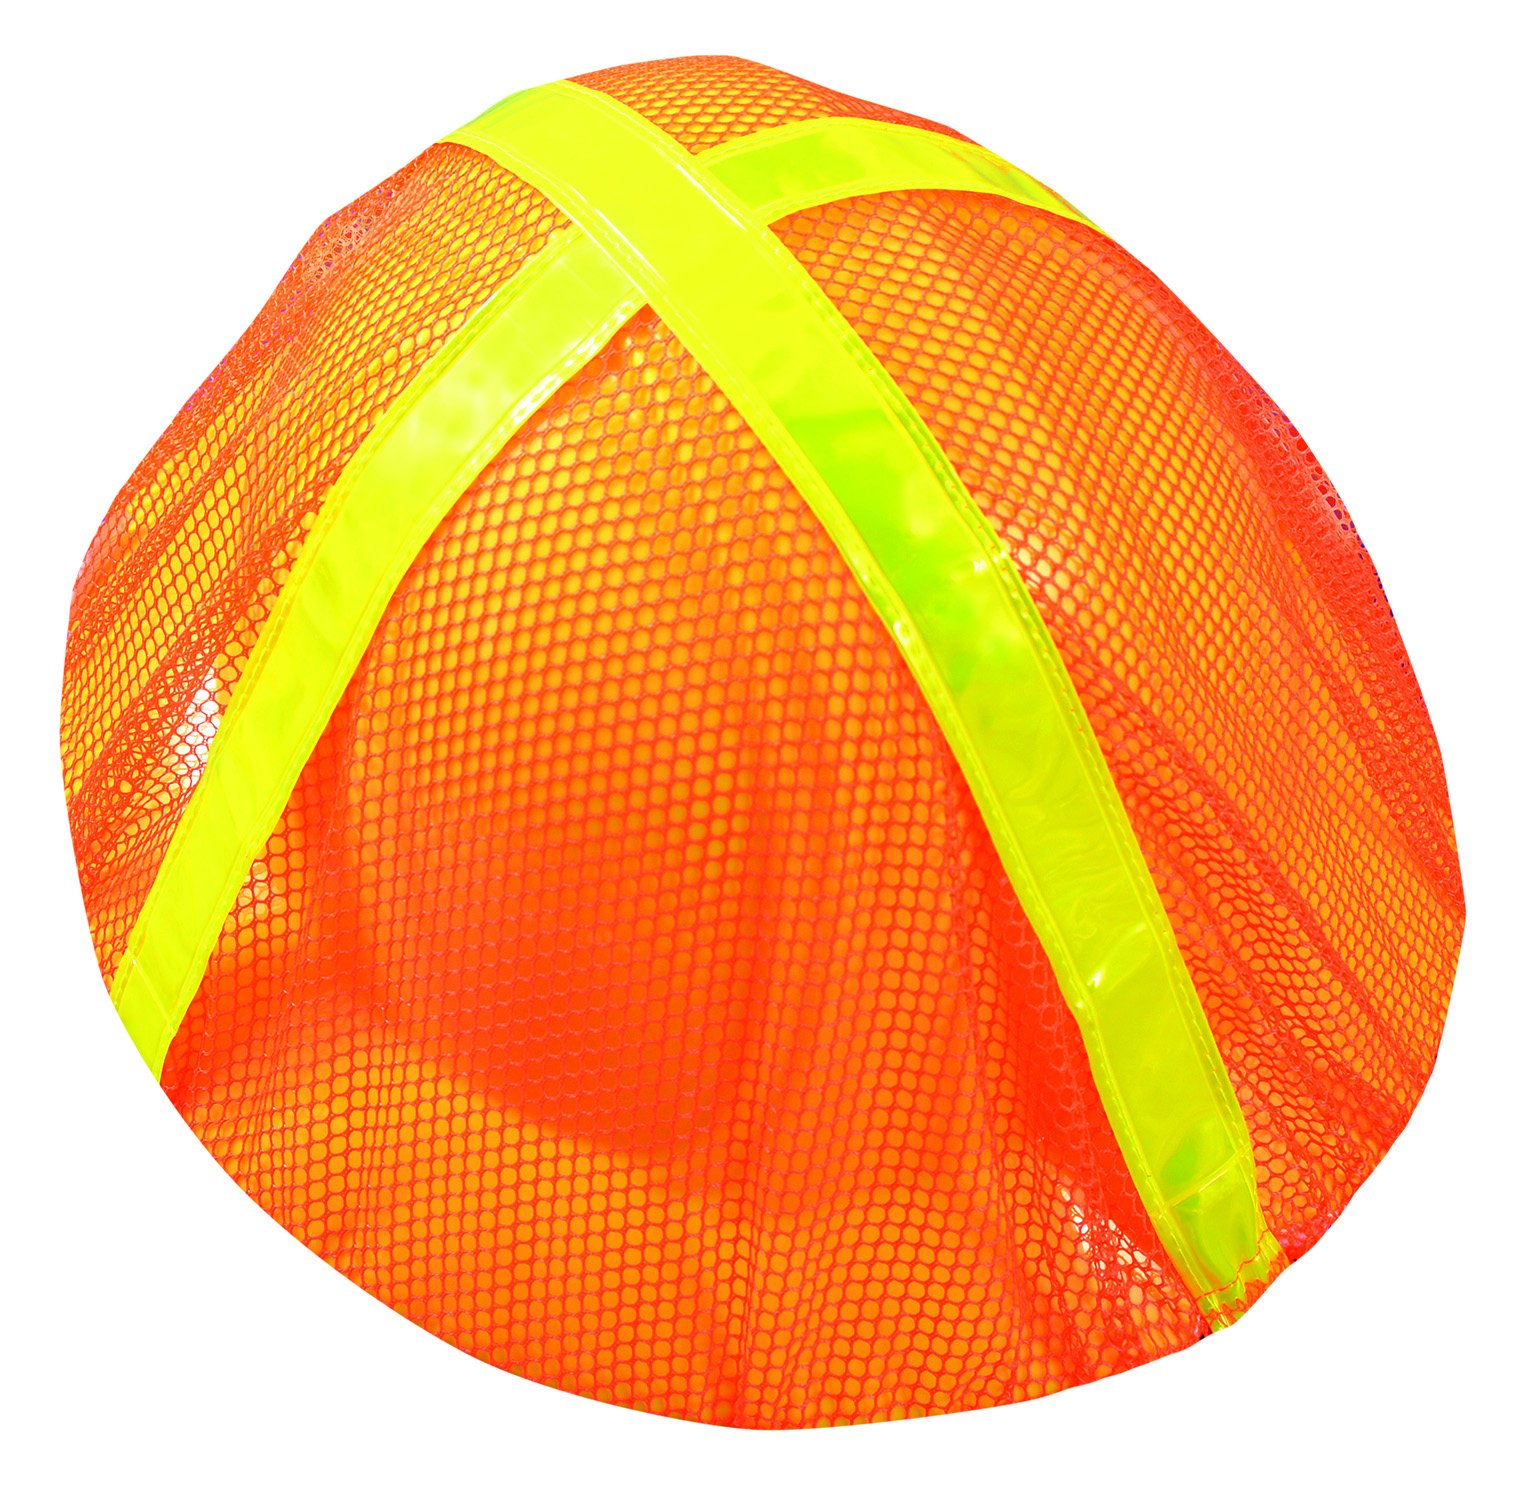 OccuNomix V896-FBO High Visibility Full Brim Hard Hat Cover, Orange, Pack of 12 by OccuNomix